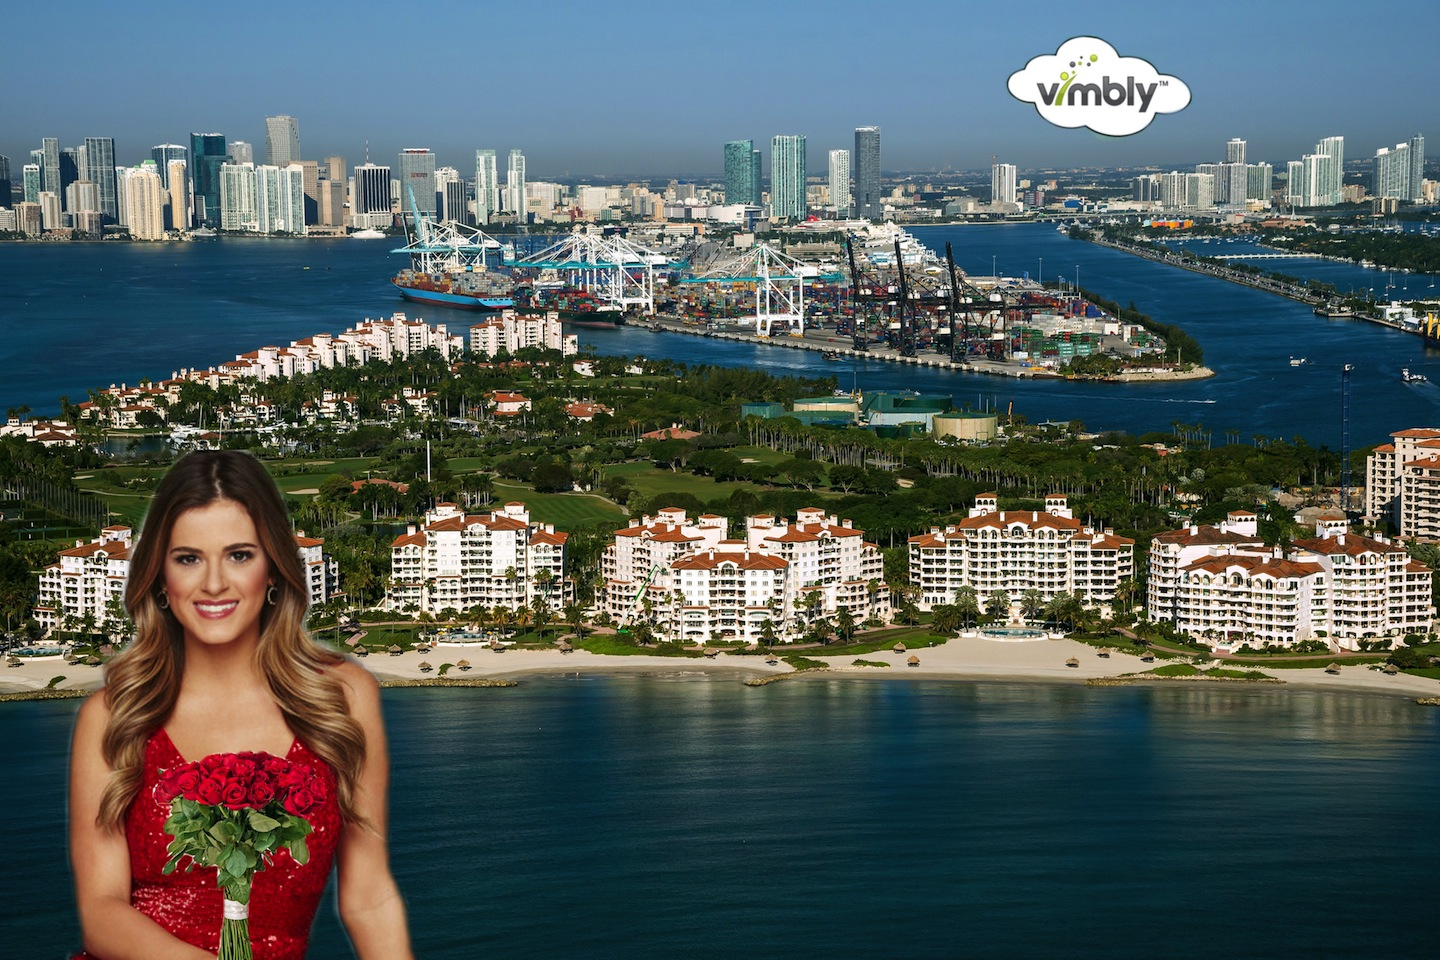 Looking for Love: Miami Date Night Inspired by The Bachelorette